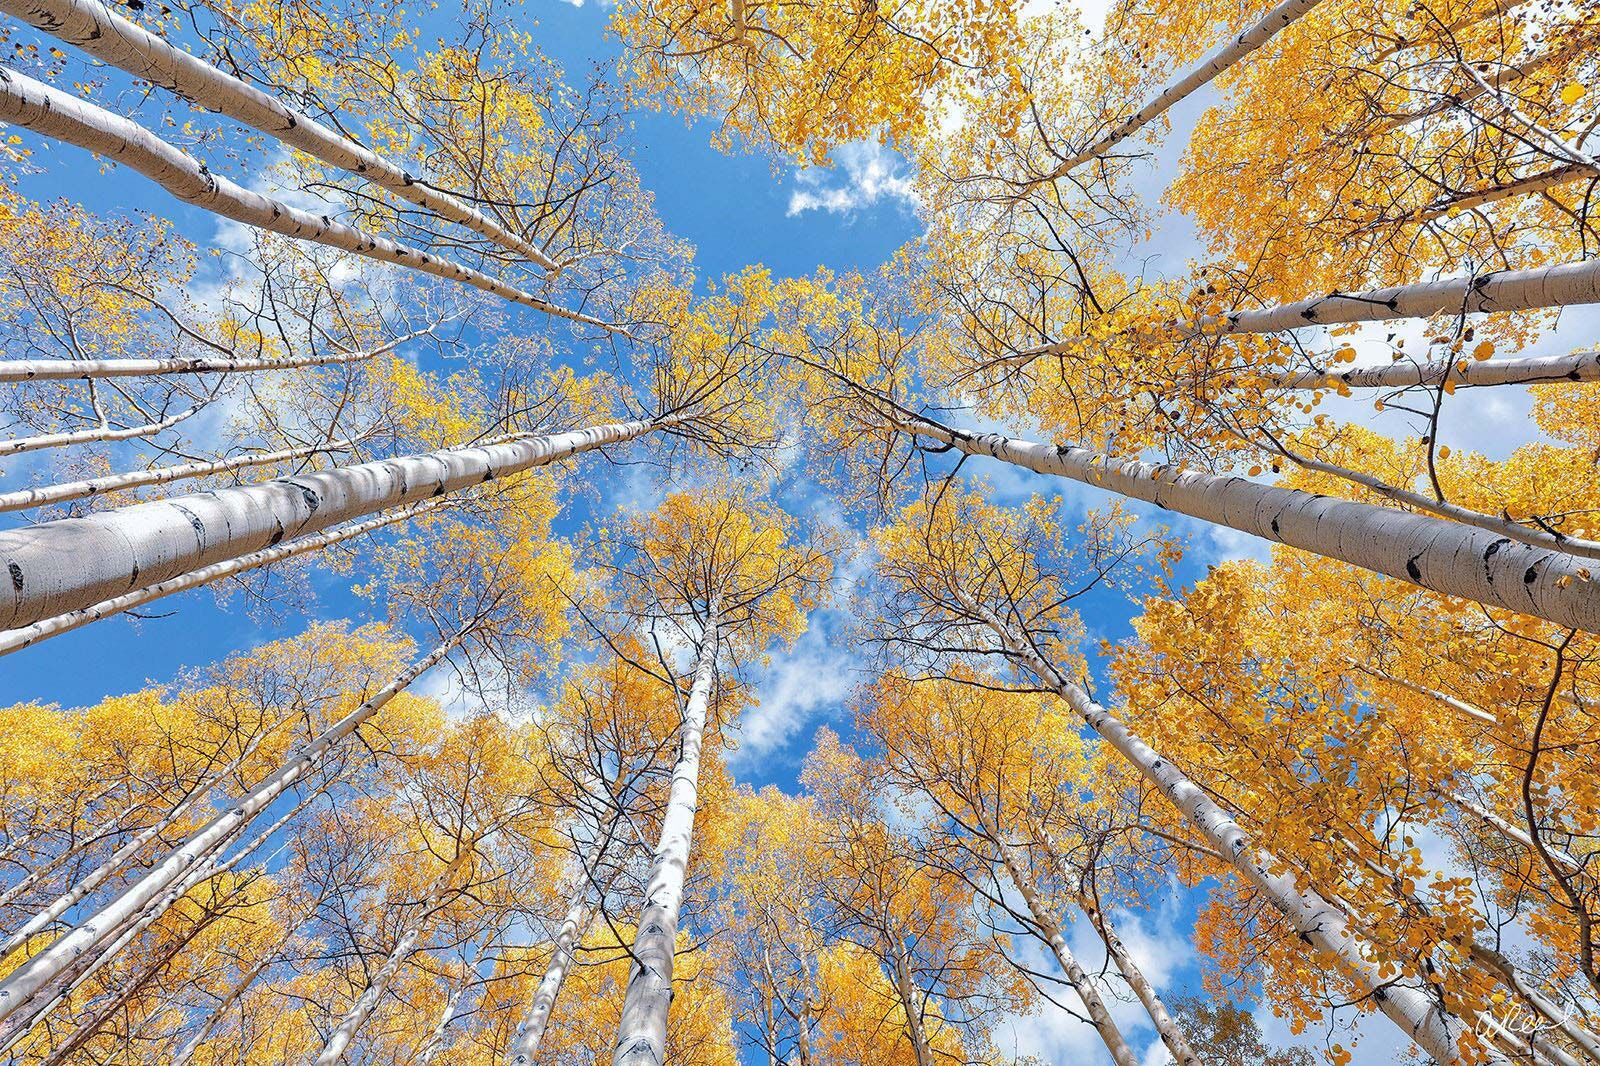 A look up at a canopy of aspen trees against a blue sky with yellow autumn leaves.